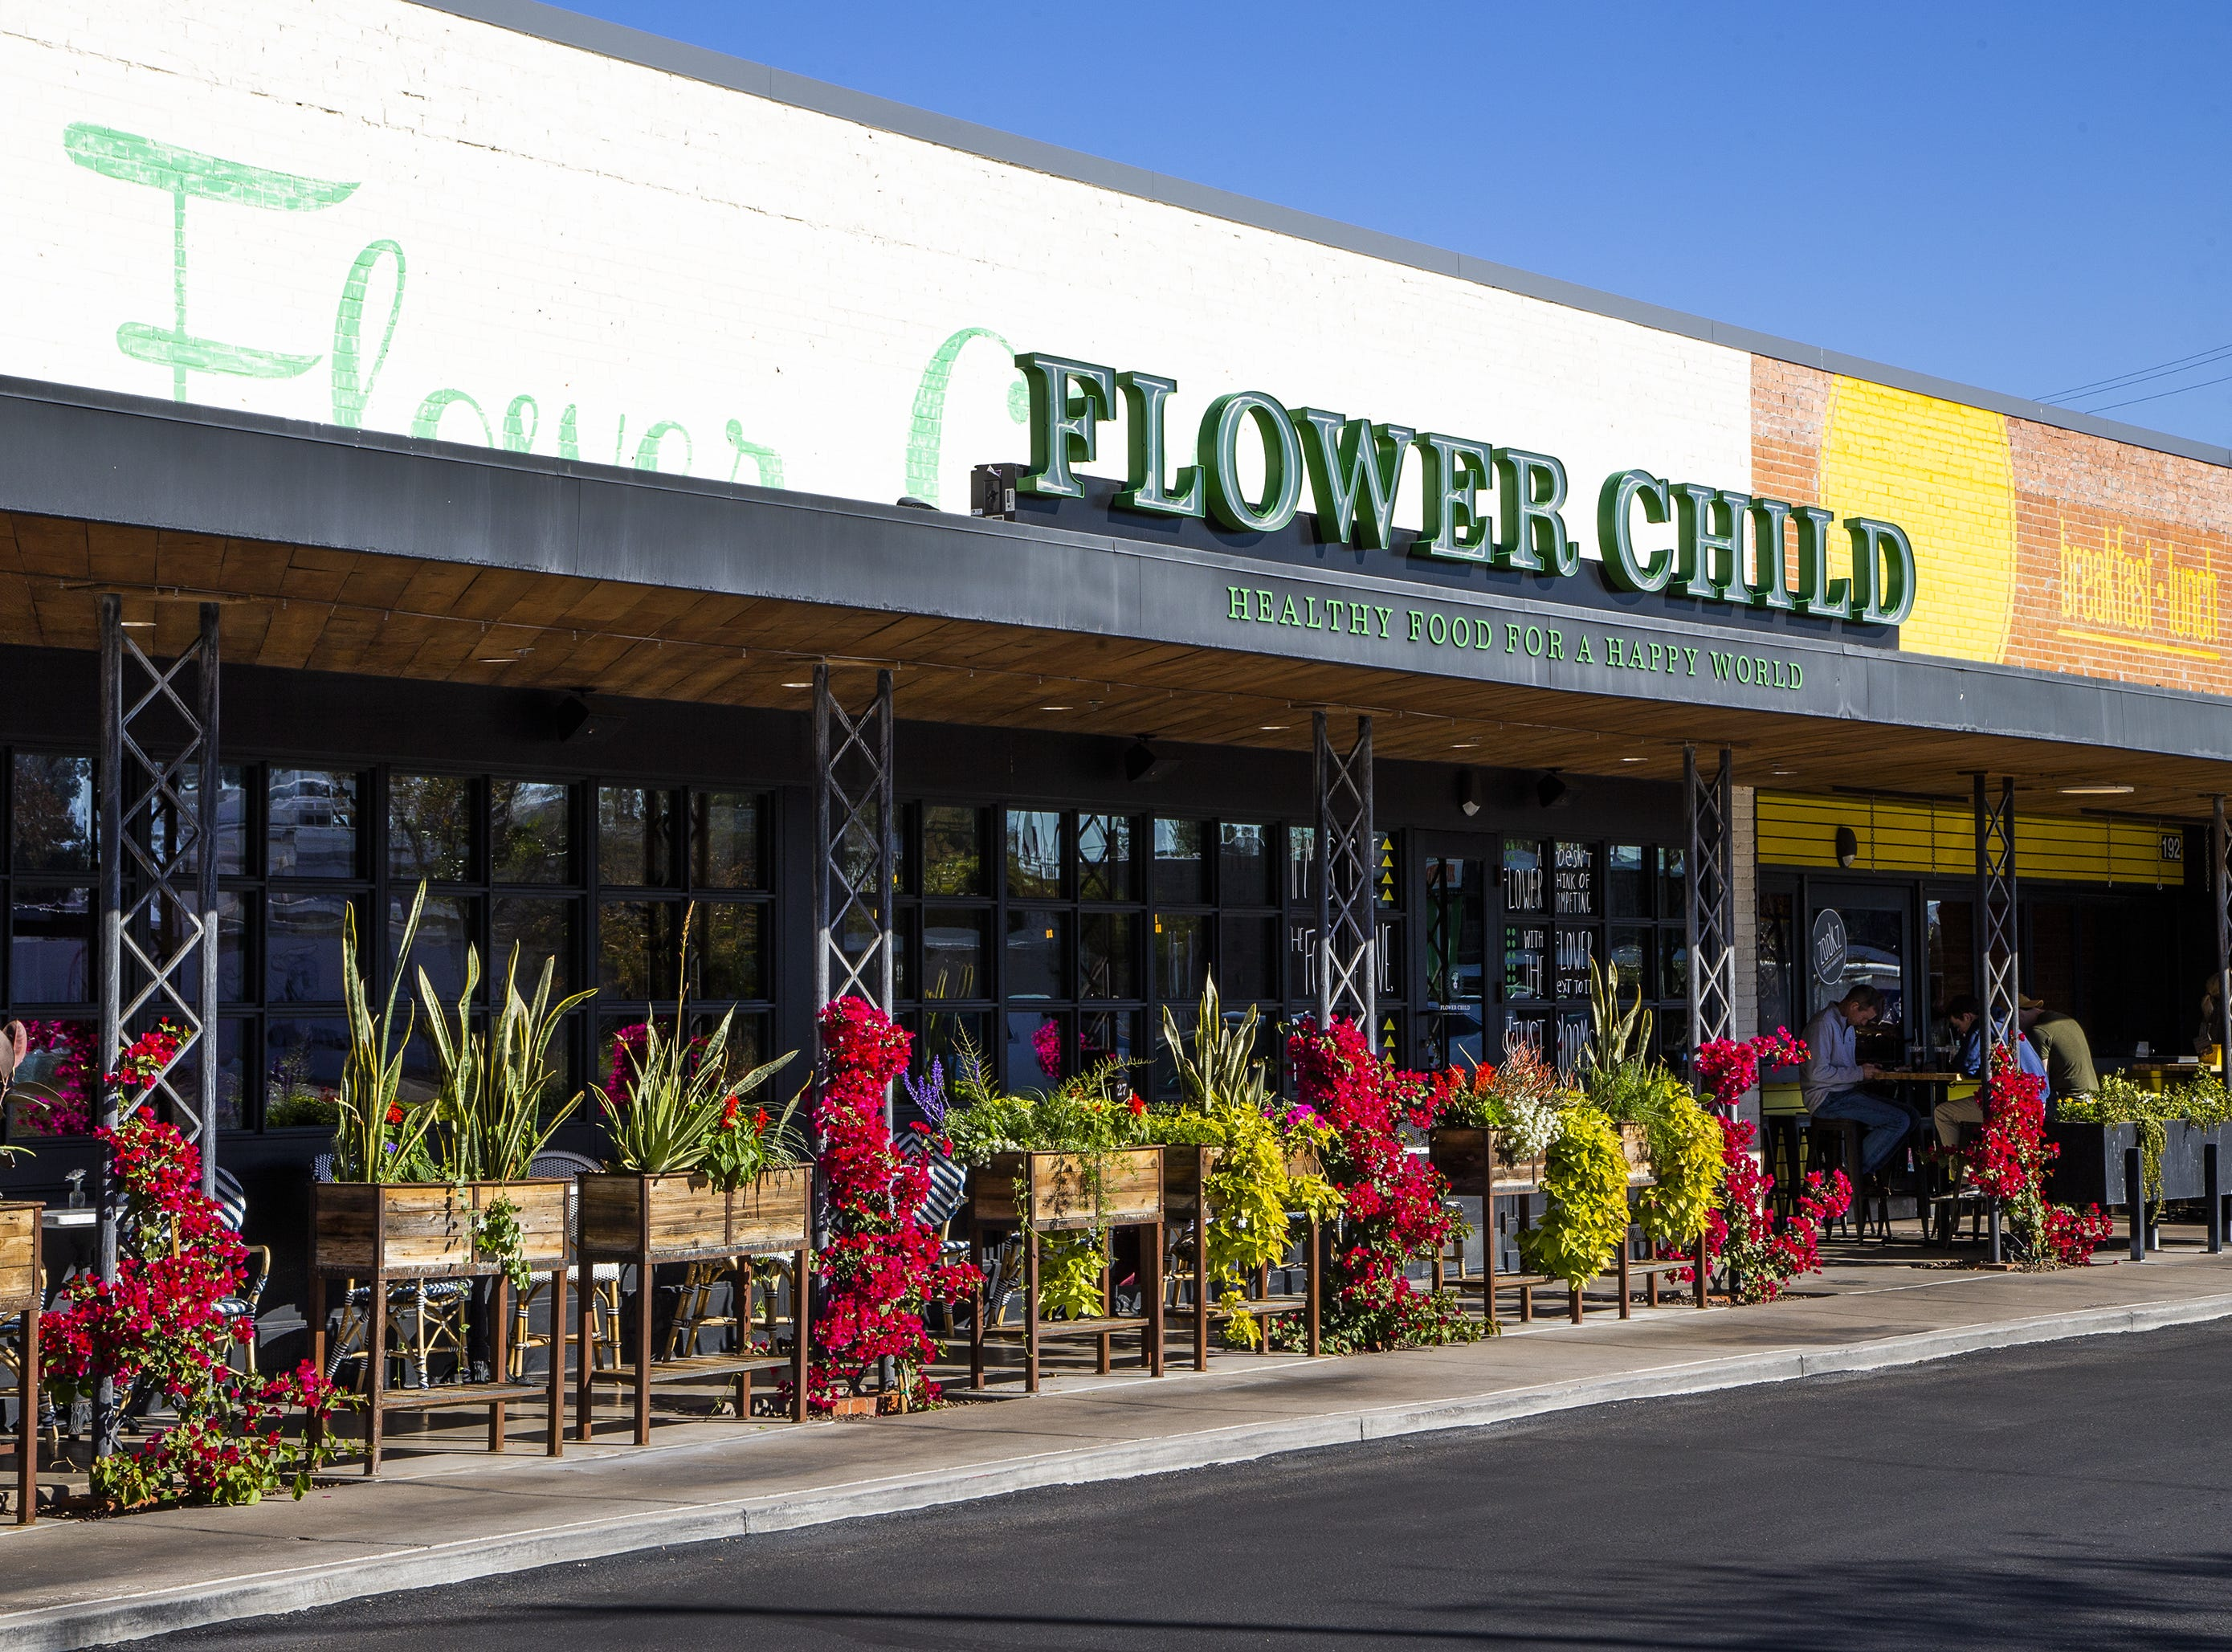 Flower Child is a restaurant at Uptown Plaza, a strip mall at the intersection of Camelback Road and Central Avenue in Phoenix.